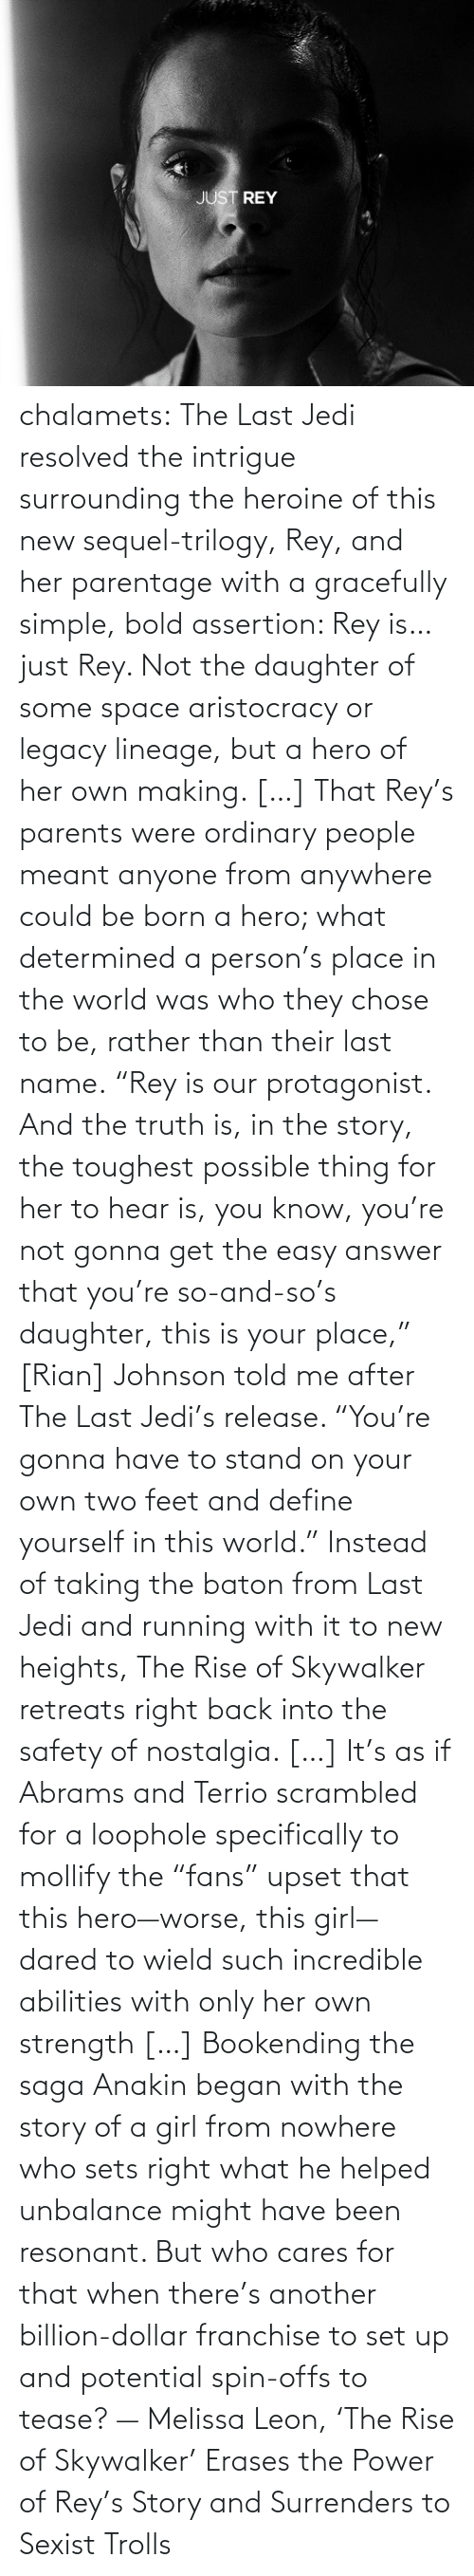 "hear: chalamets:  The Last Jedi resolved the intrigue surrounding the heroine of this new sequel-trilogy, Rey, and her parentage with a gracefully simple, bold assertion: Rey is… just Rey. Not the daughter of some space aristocracy or legacy lineage, but a hero of her own making. […] That Rey's parents were ordinary people meant anyone from anywhere could be born a hero; what determined a person's place in the world was who they chose to be, rather than their last name. ""Rey is our protagonist. And the truth is, in the story, the toughest possible thing for her to hear is, you know, you're not gonna get the easy answer that you're so-and-so's daughter, this is your place,"" [Rian] Johnson told me after The Last Jedi's release. ""You're gonna have to stand on your own two feet and define yourself in this world."" Instead of taking the baton from Last Jedi and running with it to new heights, The Rise of Skywalker retreats right back into the safety of nostalgia. […] It's as if Abrams and Terrio scrambled for a loophole specifically to mollify the ""fans"" upset that this hero—worse, this girl—dared to wield such incredible abilities with only her own strength […] Bookending the saga Anakin began with the story of a girl from nowhere who sets right what he helped unbalance might have been resonant. But who cares for that when there's another billion-dollar franchise to set up and potential spin-offs to tease? — Melissa Leon, 'The Rise of Skywalker' Erases the Power of Rey's Story and Surrenders to Sexist Trolls"